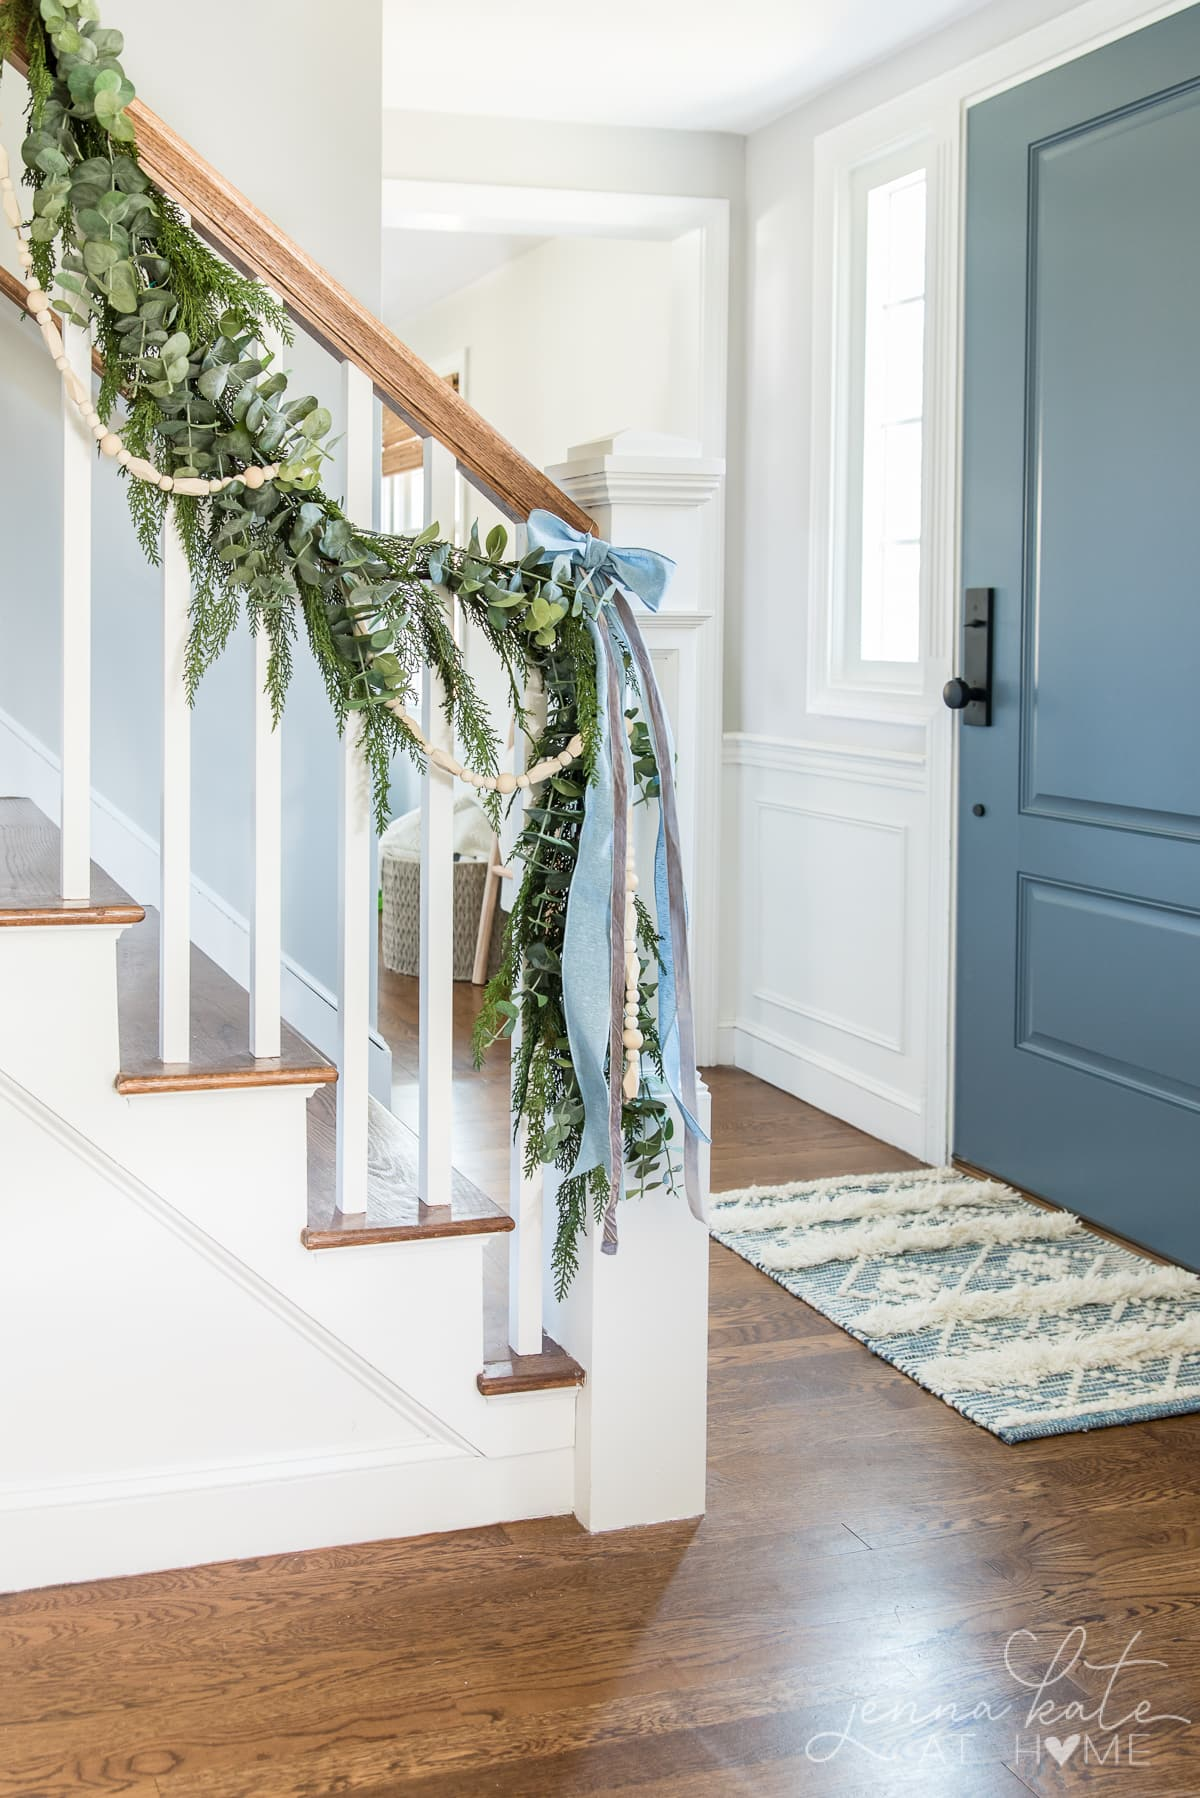 Hallway with garland on the banister